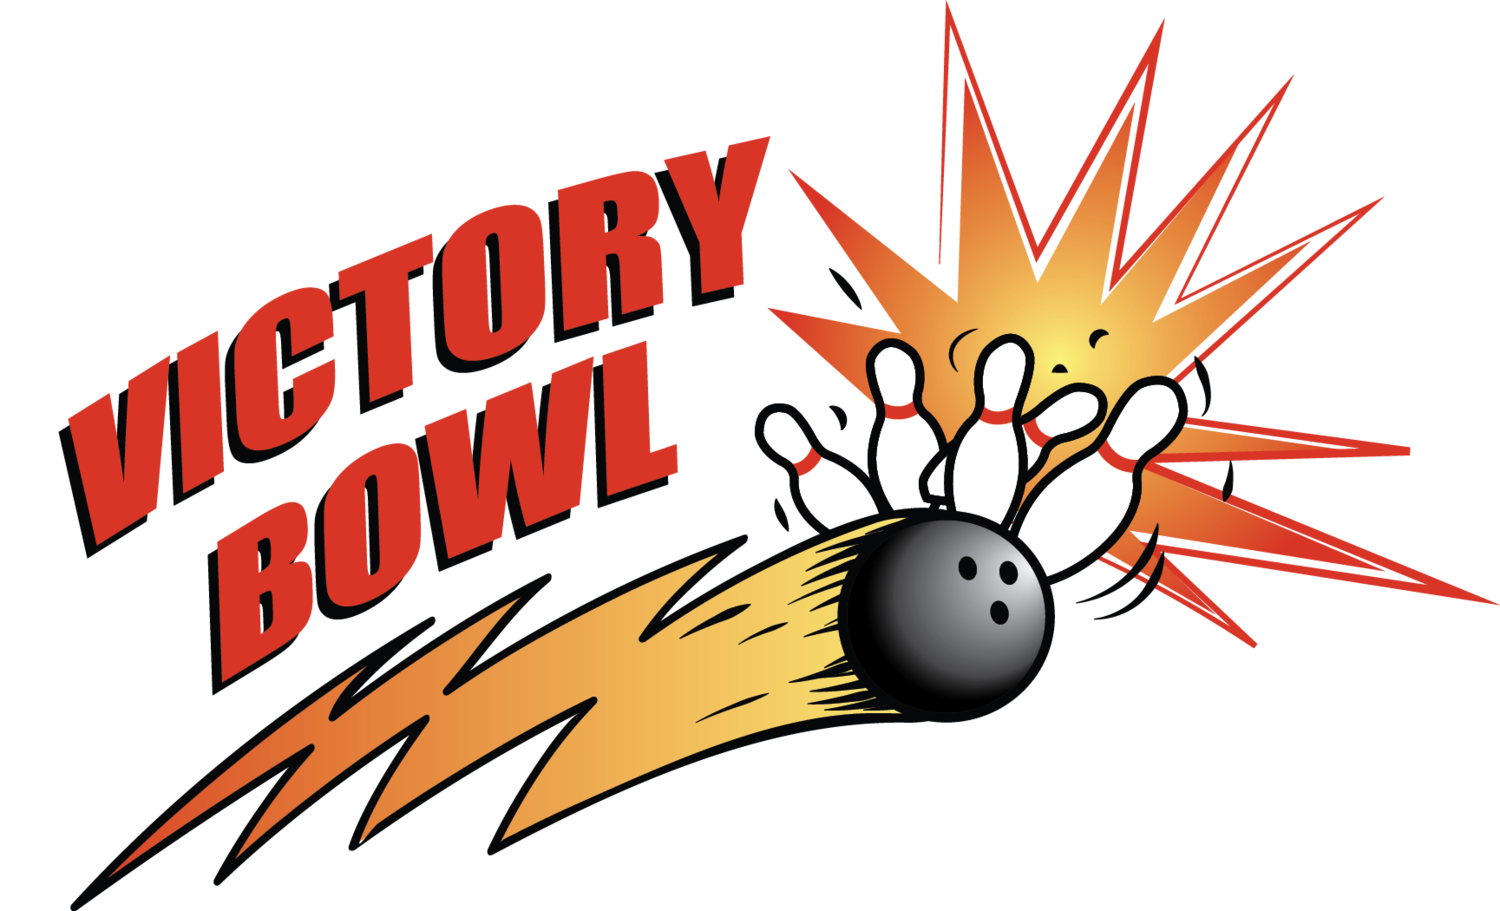 Floor clipart bowling party bowling. Victory bowl home